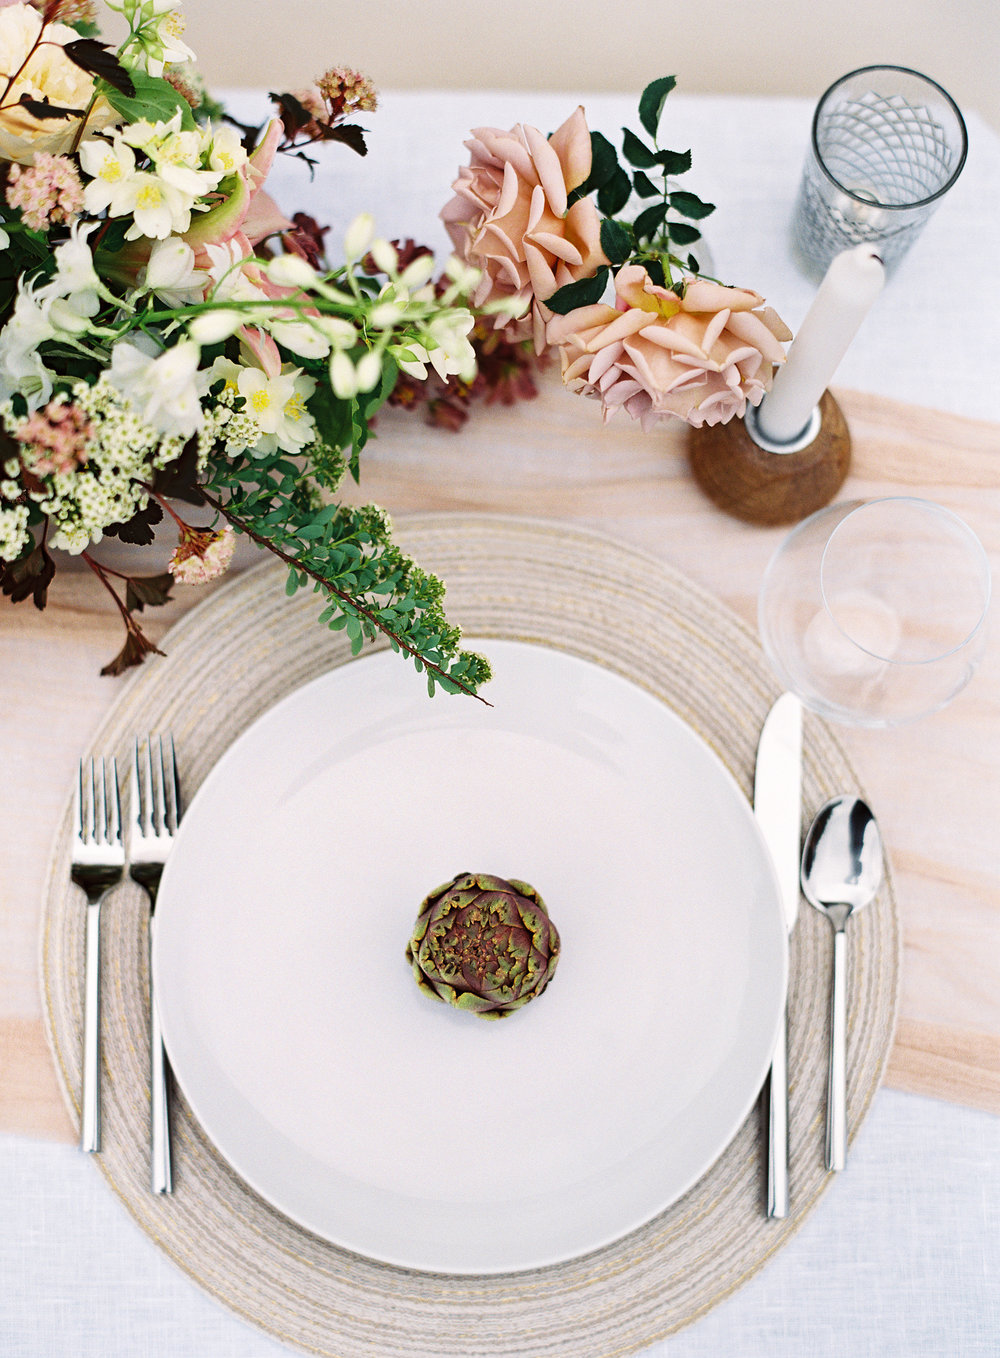 Photo by Christine Doneé Floral by Ellamah Modern Rustic Tablescape_4.jpg